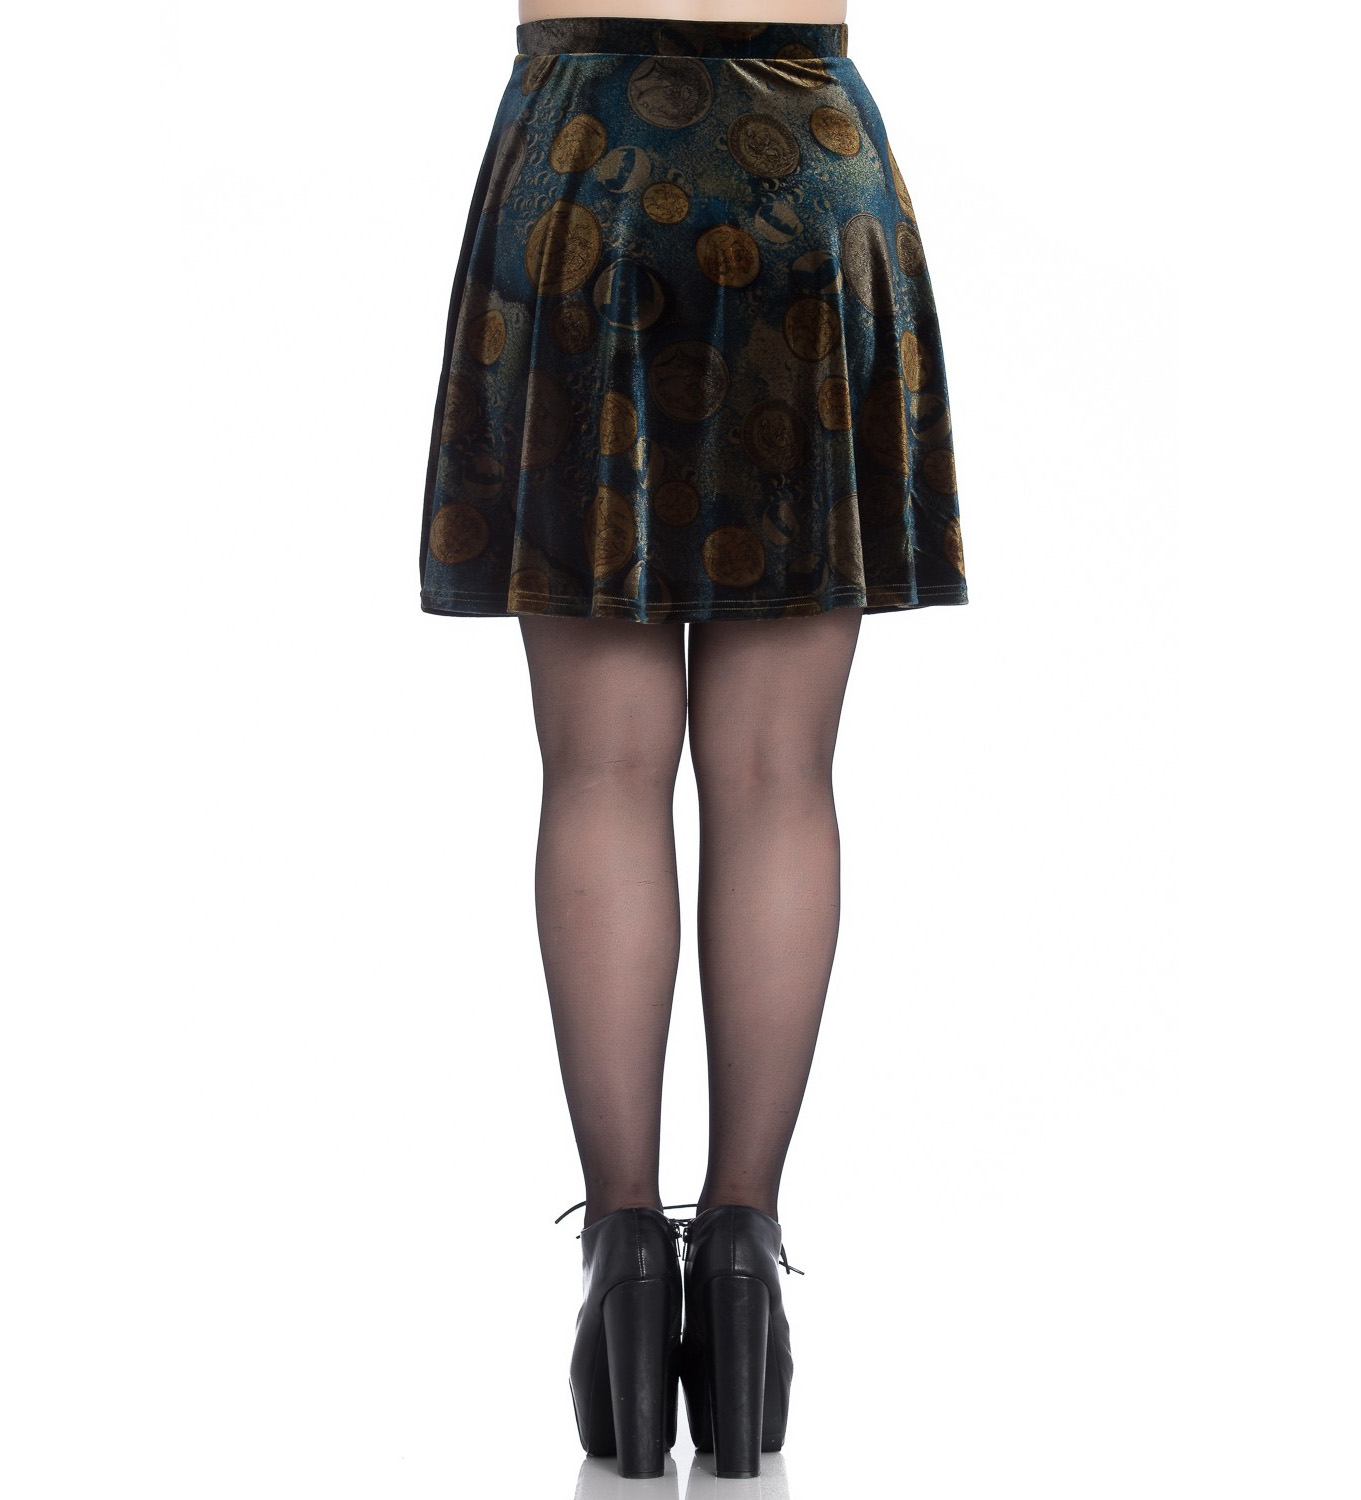 Mini Tutte Gothic Coins Skirt Golden dimensioni Hell Bunny le Fortuna Velluto Skater xznn5H